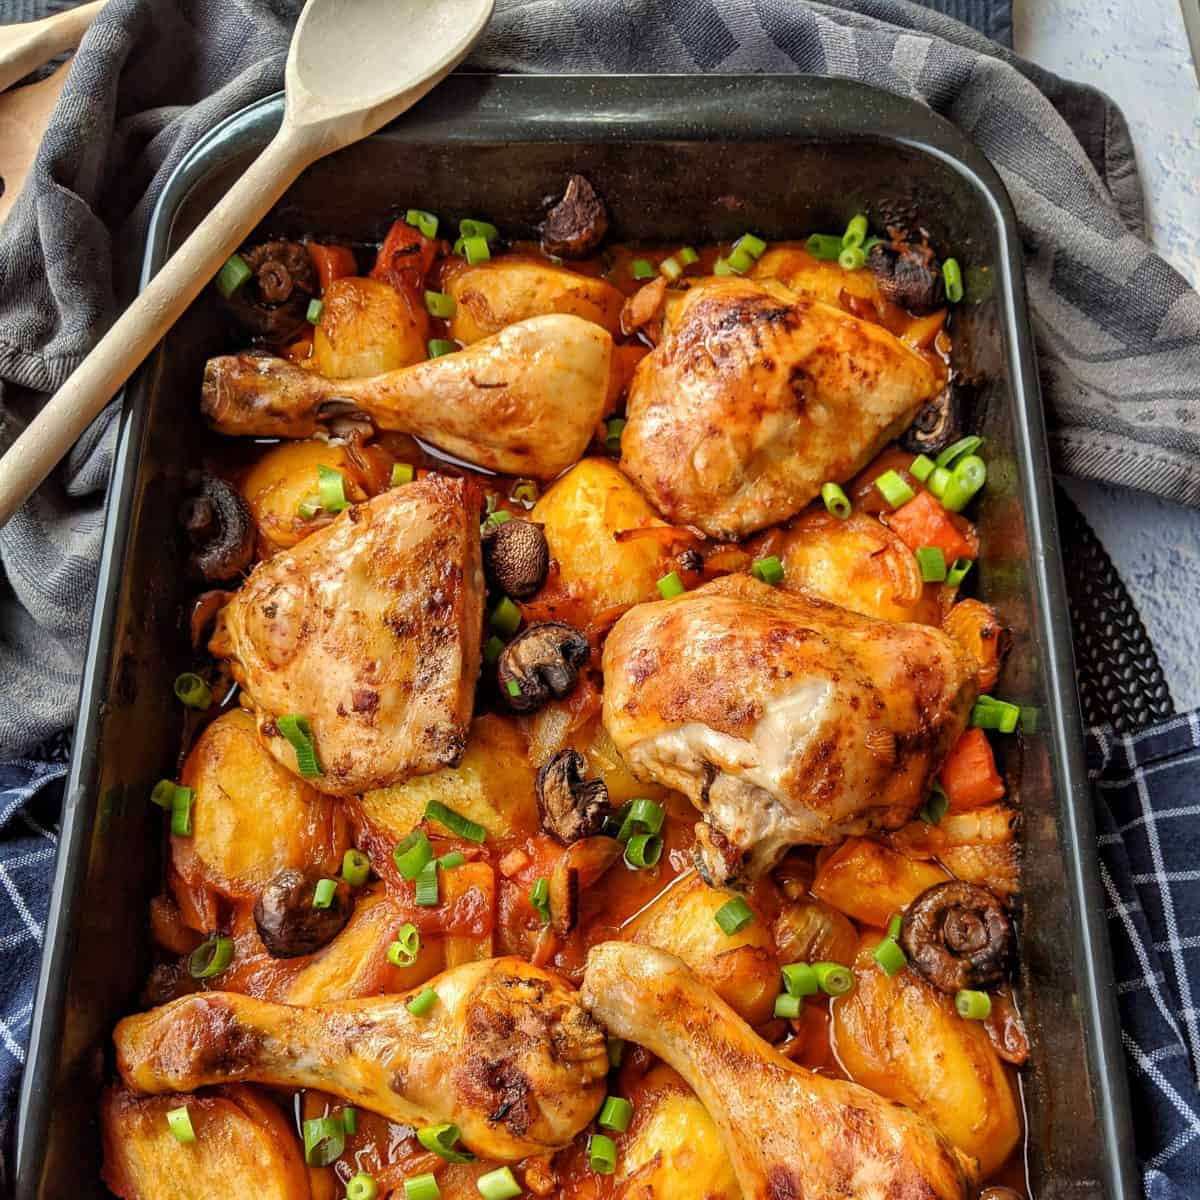 A casserole dish with oven-fried chicken with potatoes and vegetables in tomato sauce